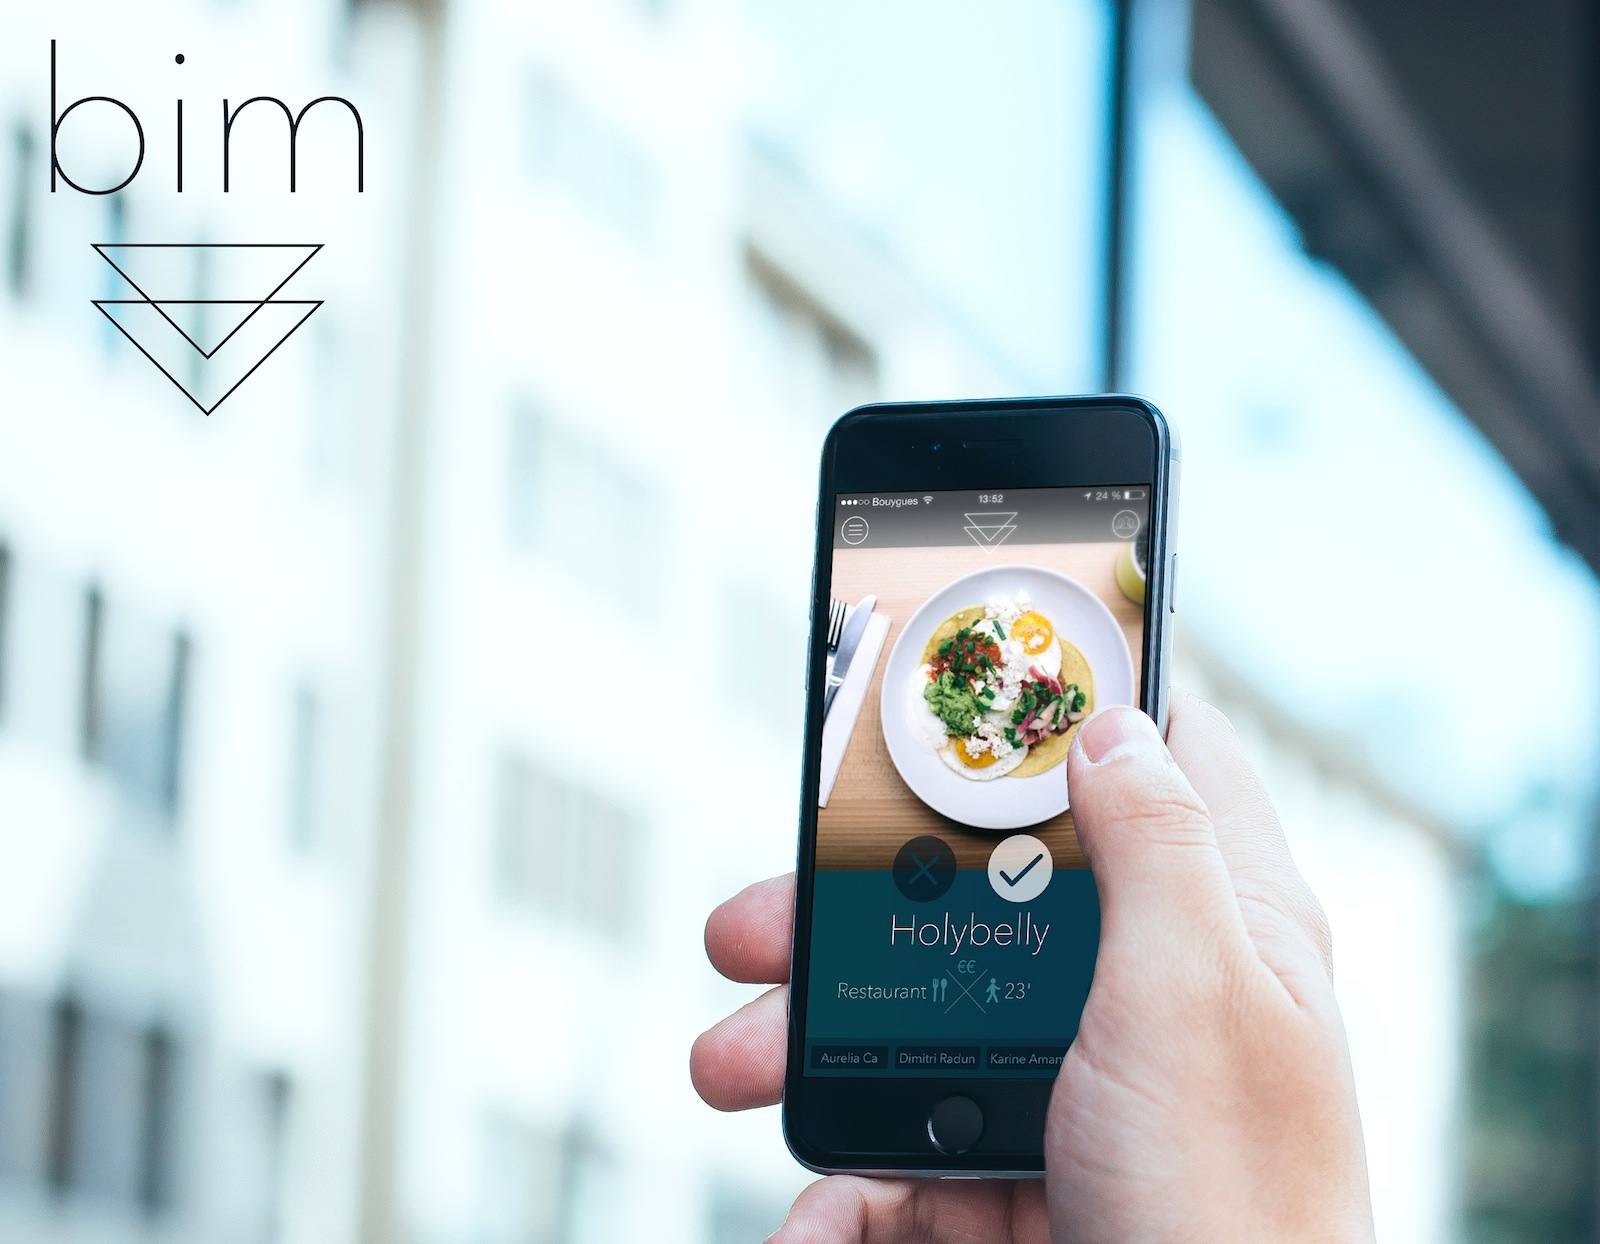 The Five Best Apps for Food-Lovers in Paris like Bim, will help you find great local places to eat and drink like the coffee shop Holybelly, a local favorite, which comes up on the screen of the phone in this photo.